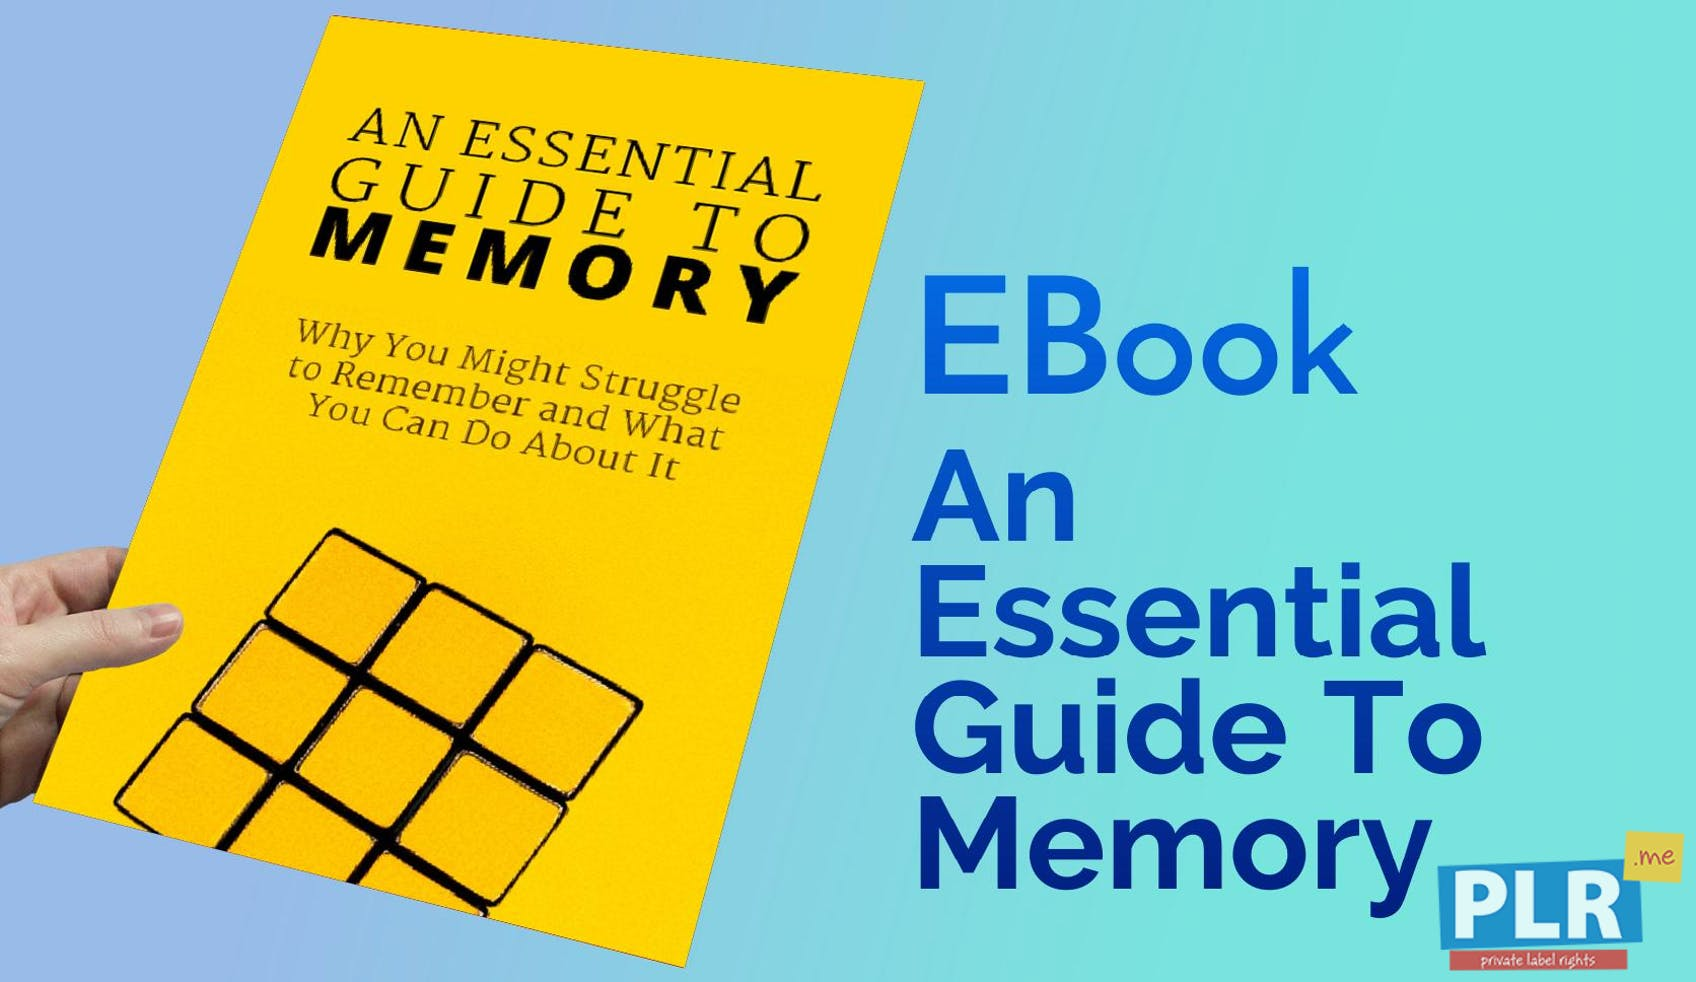 An Essential Guide To Memory